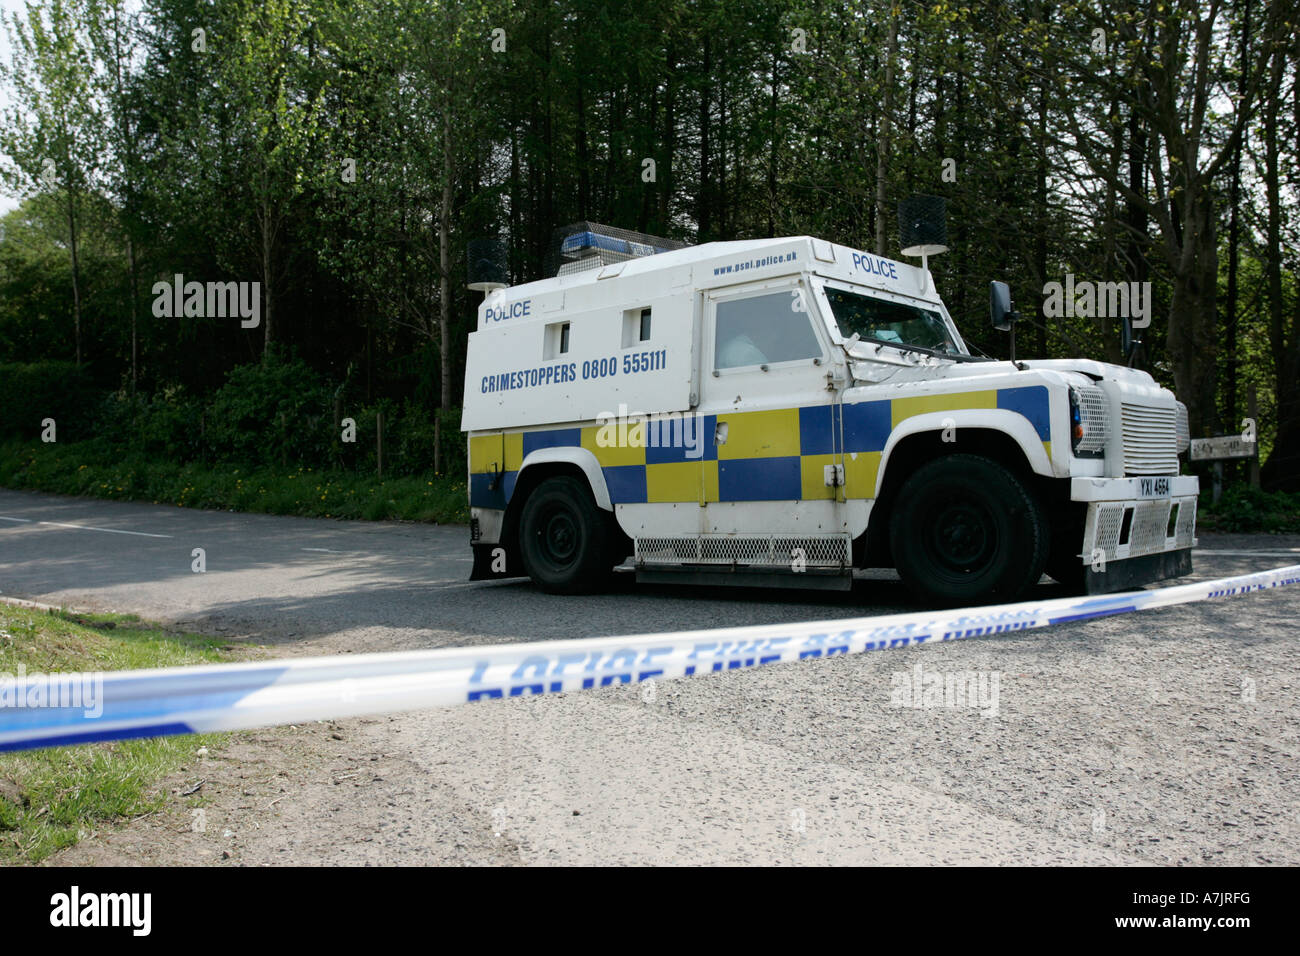 PSNI Land Rover behind police line tape at incident outside Belfast Northern Ireland - Stock Image